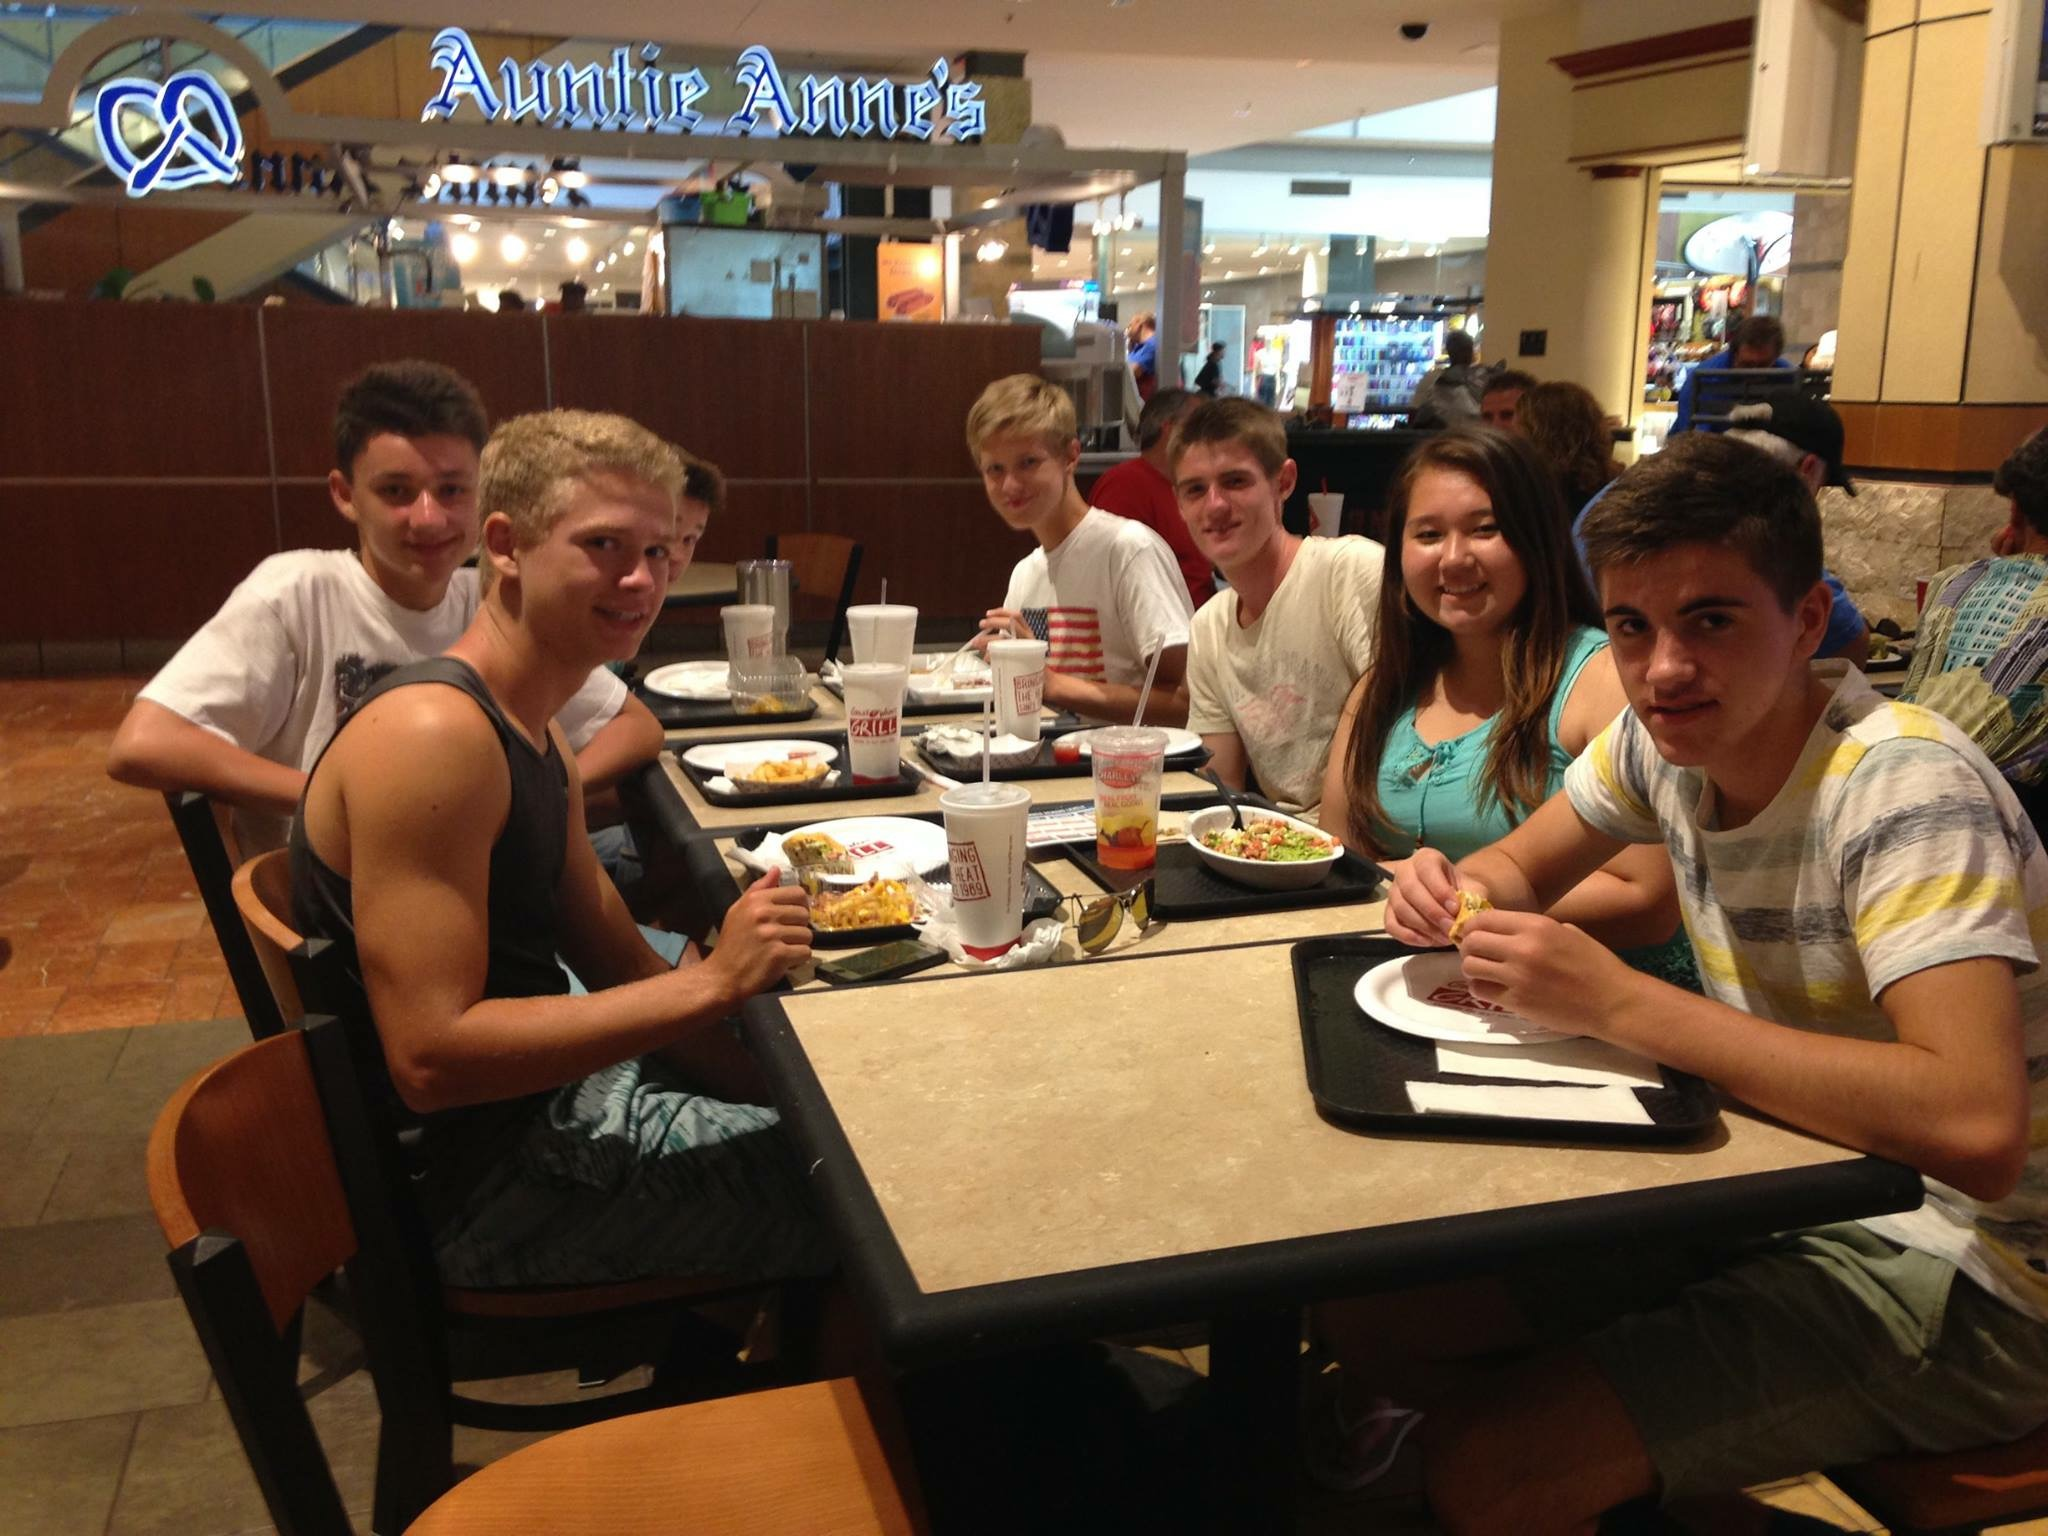 Exchange students Nicolas Gorres, Moritz Dittrich and Kai  Borgen enjoy lunch time with host brother and sister, Patricia Rutherford and Spencer Hritz. Photo courtesy of Patricia Rutherford.